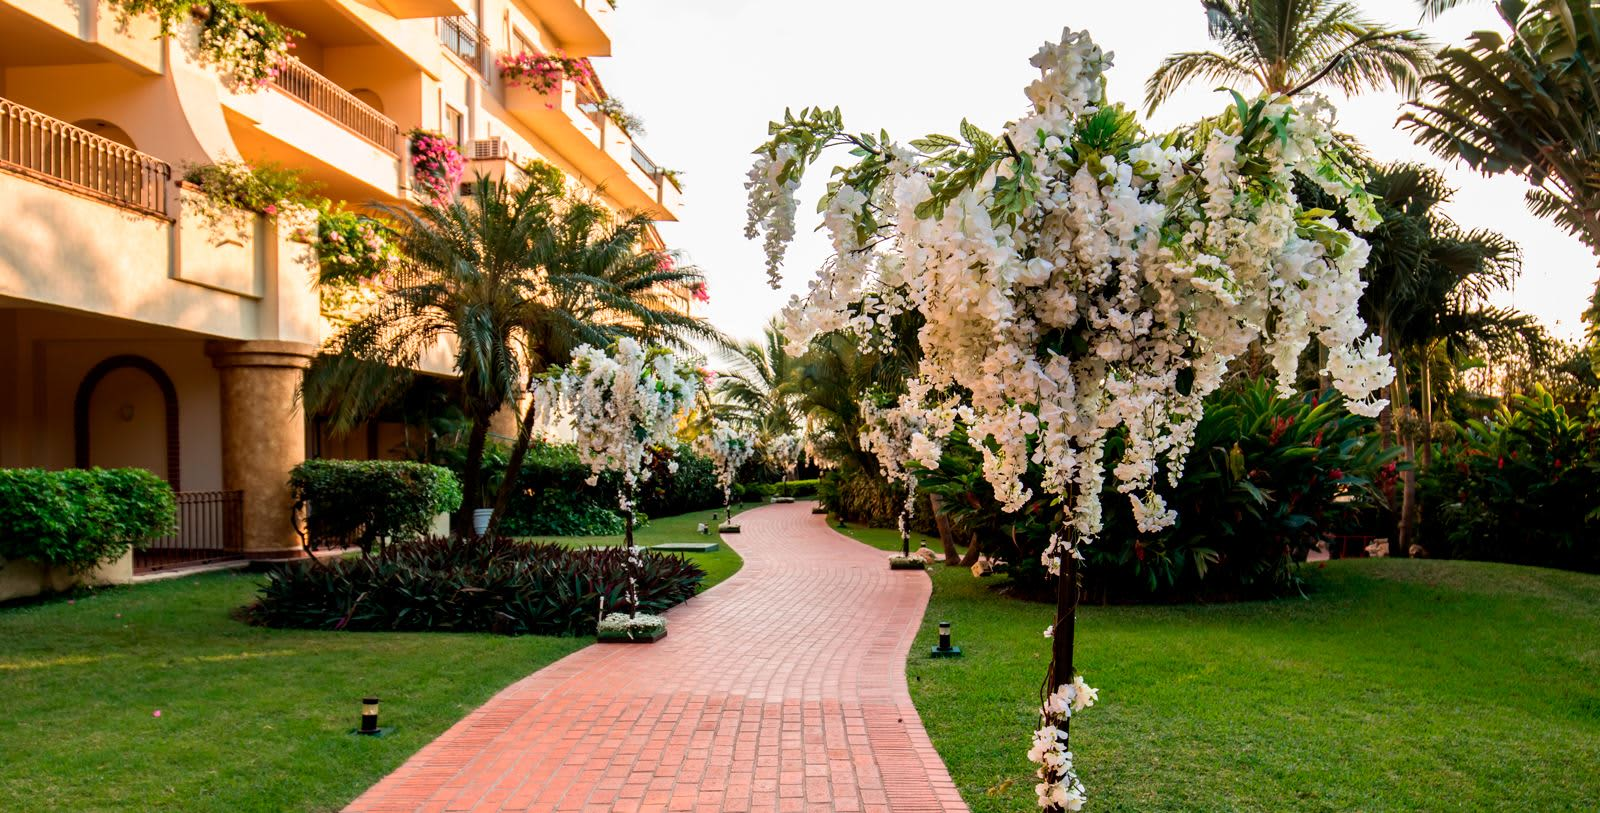 https---www.velasweddings.com-photogallery-large-homevelasvallarta-decoration-location-wedding-velas-valalrta-hotel